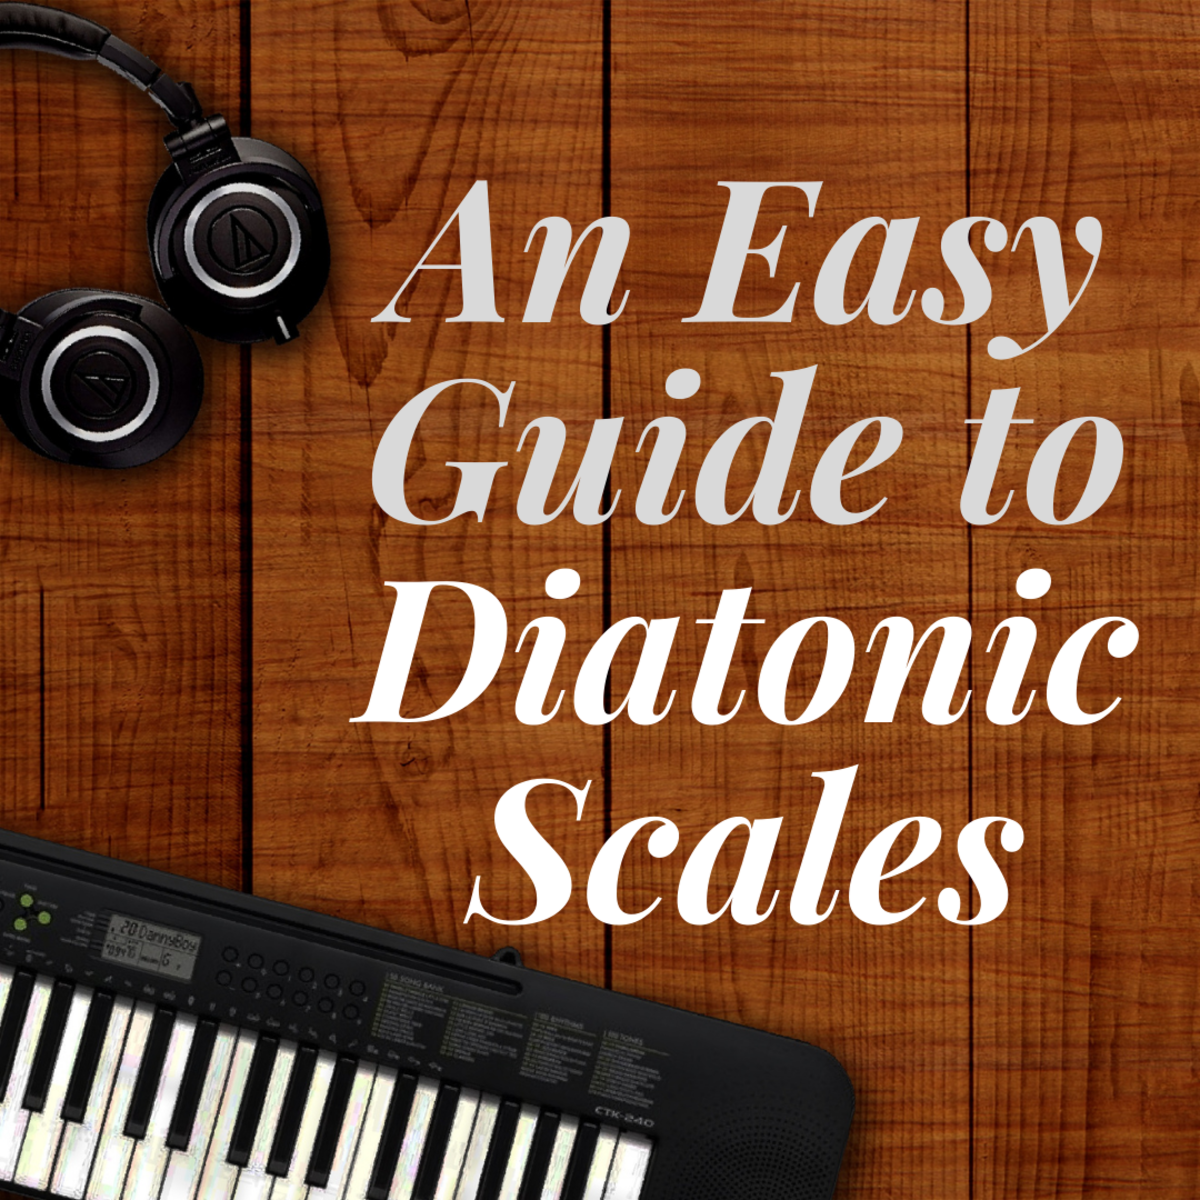 Learn what diatonic scales are and where they came from.